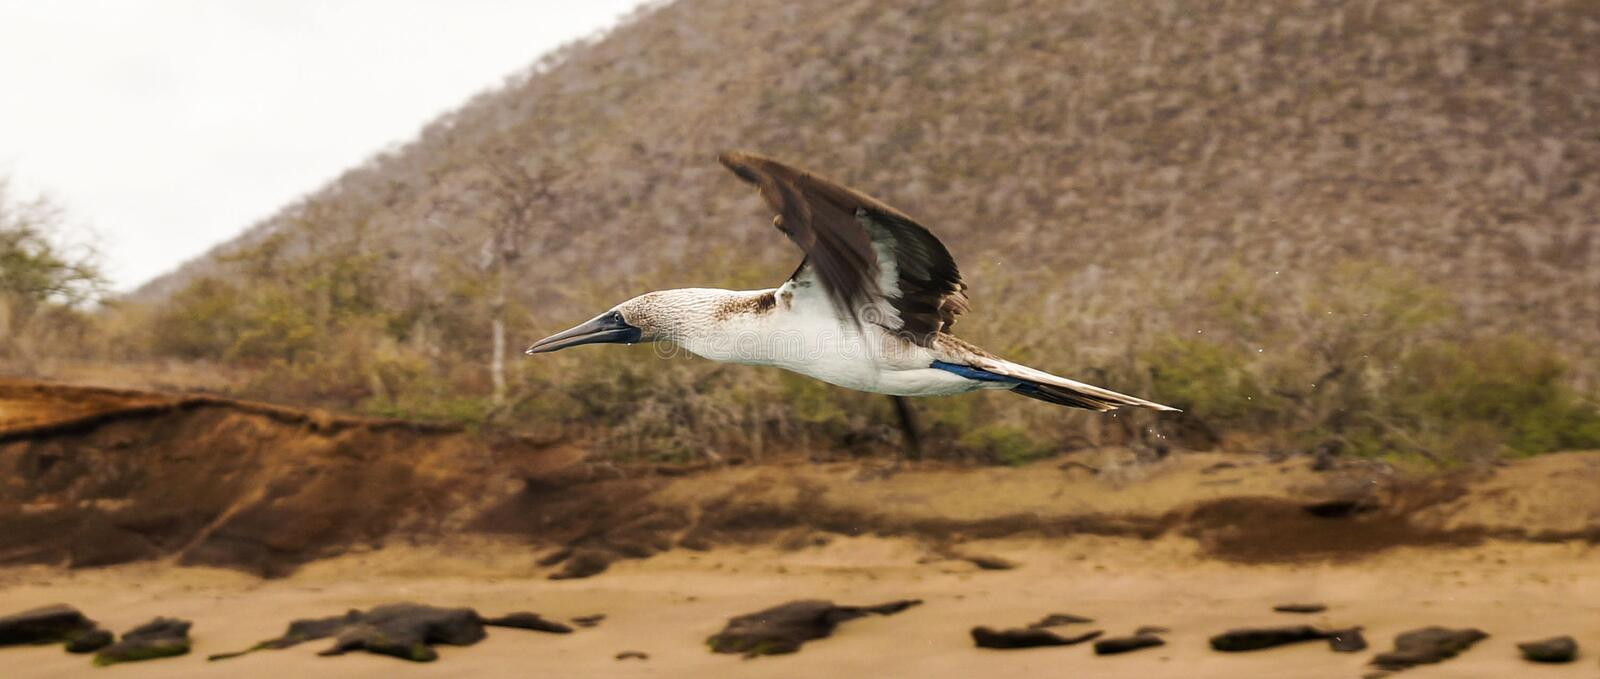 Flying Blue footed booby, Galapagos Islands. Blue footed booby, Galapagos Islands. Flying royalty free stock images